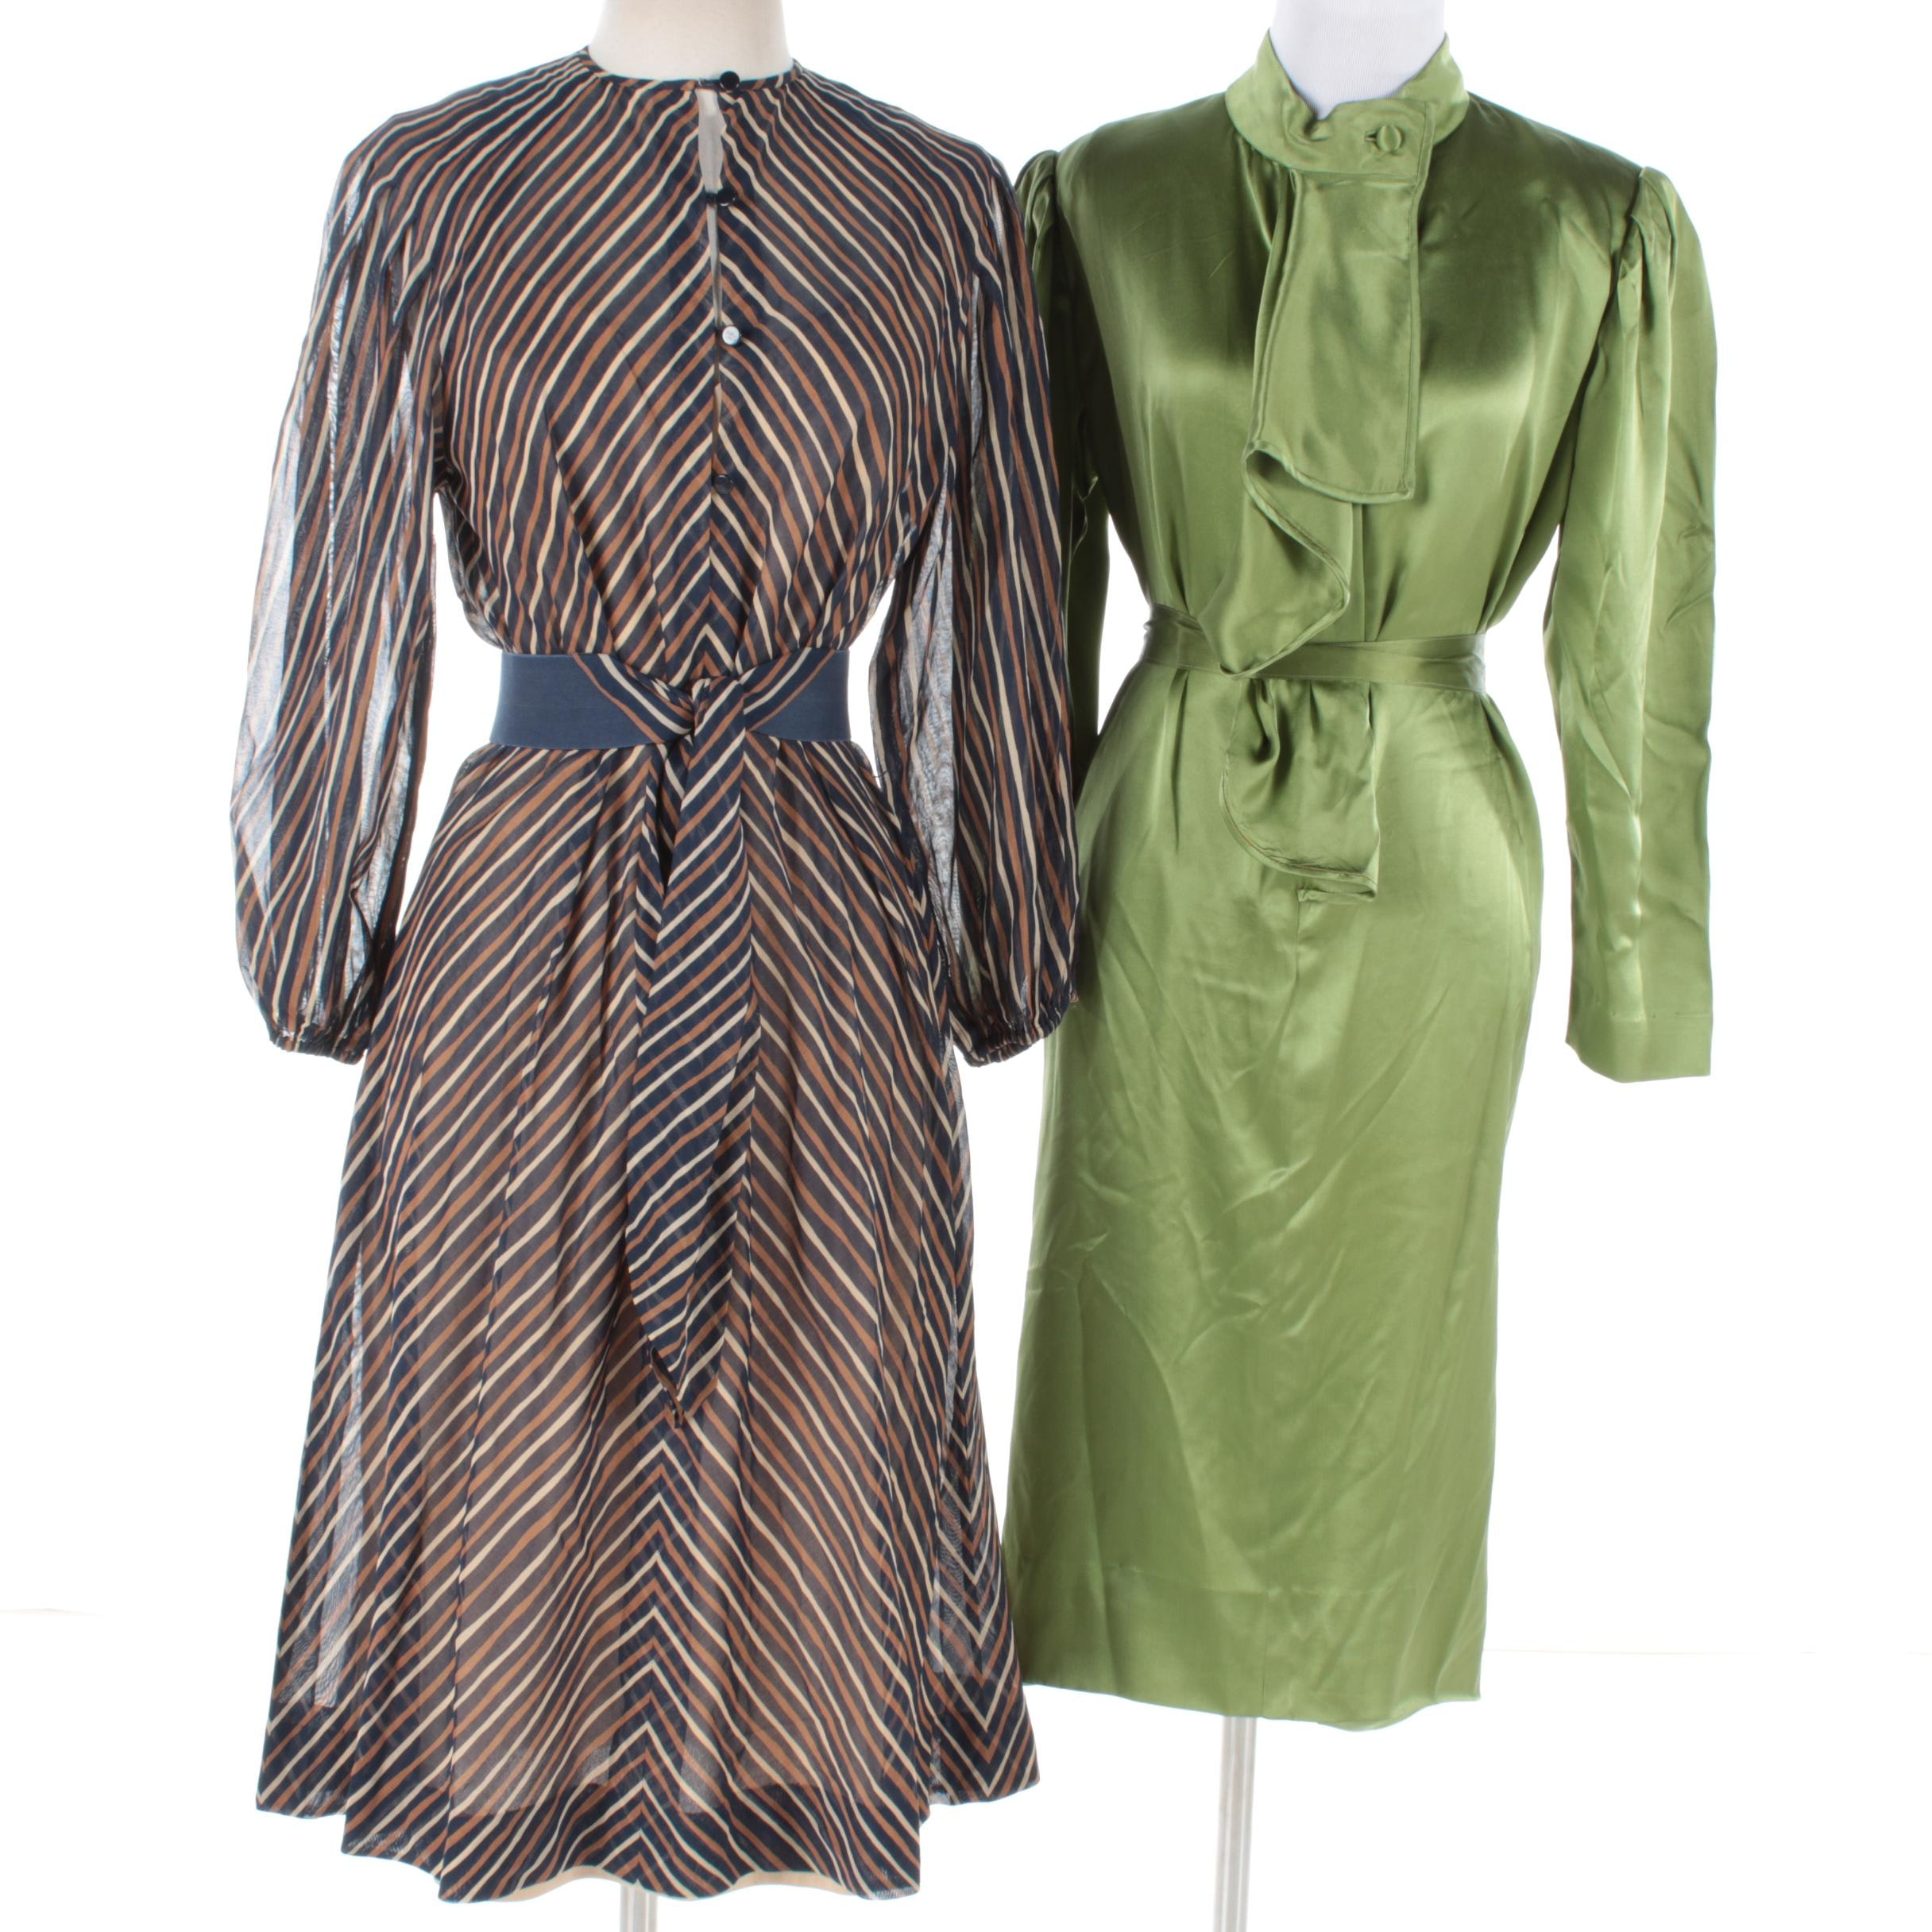 Women's Vintage Dresses Including Christian Rupert